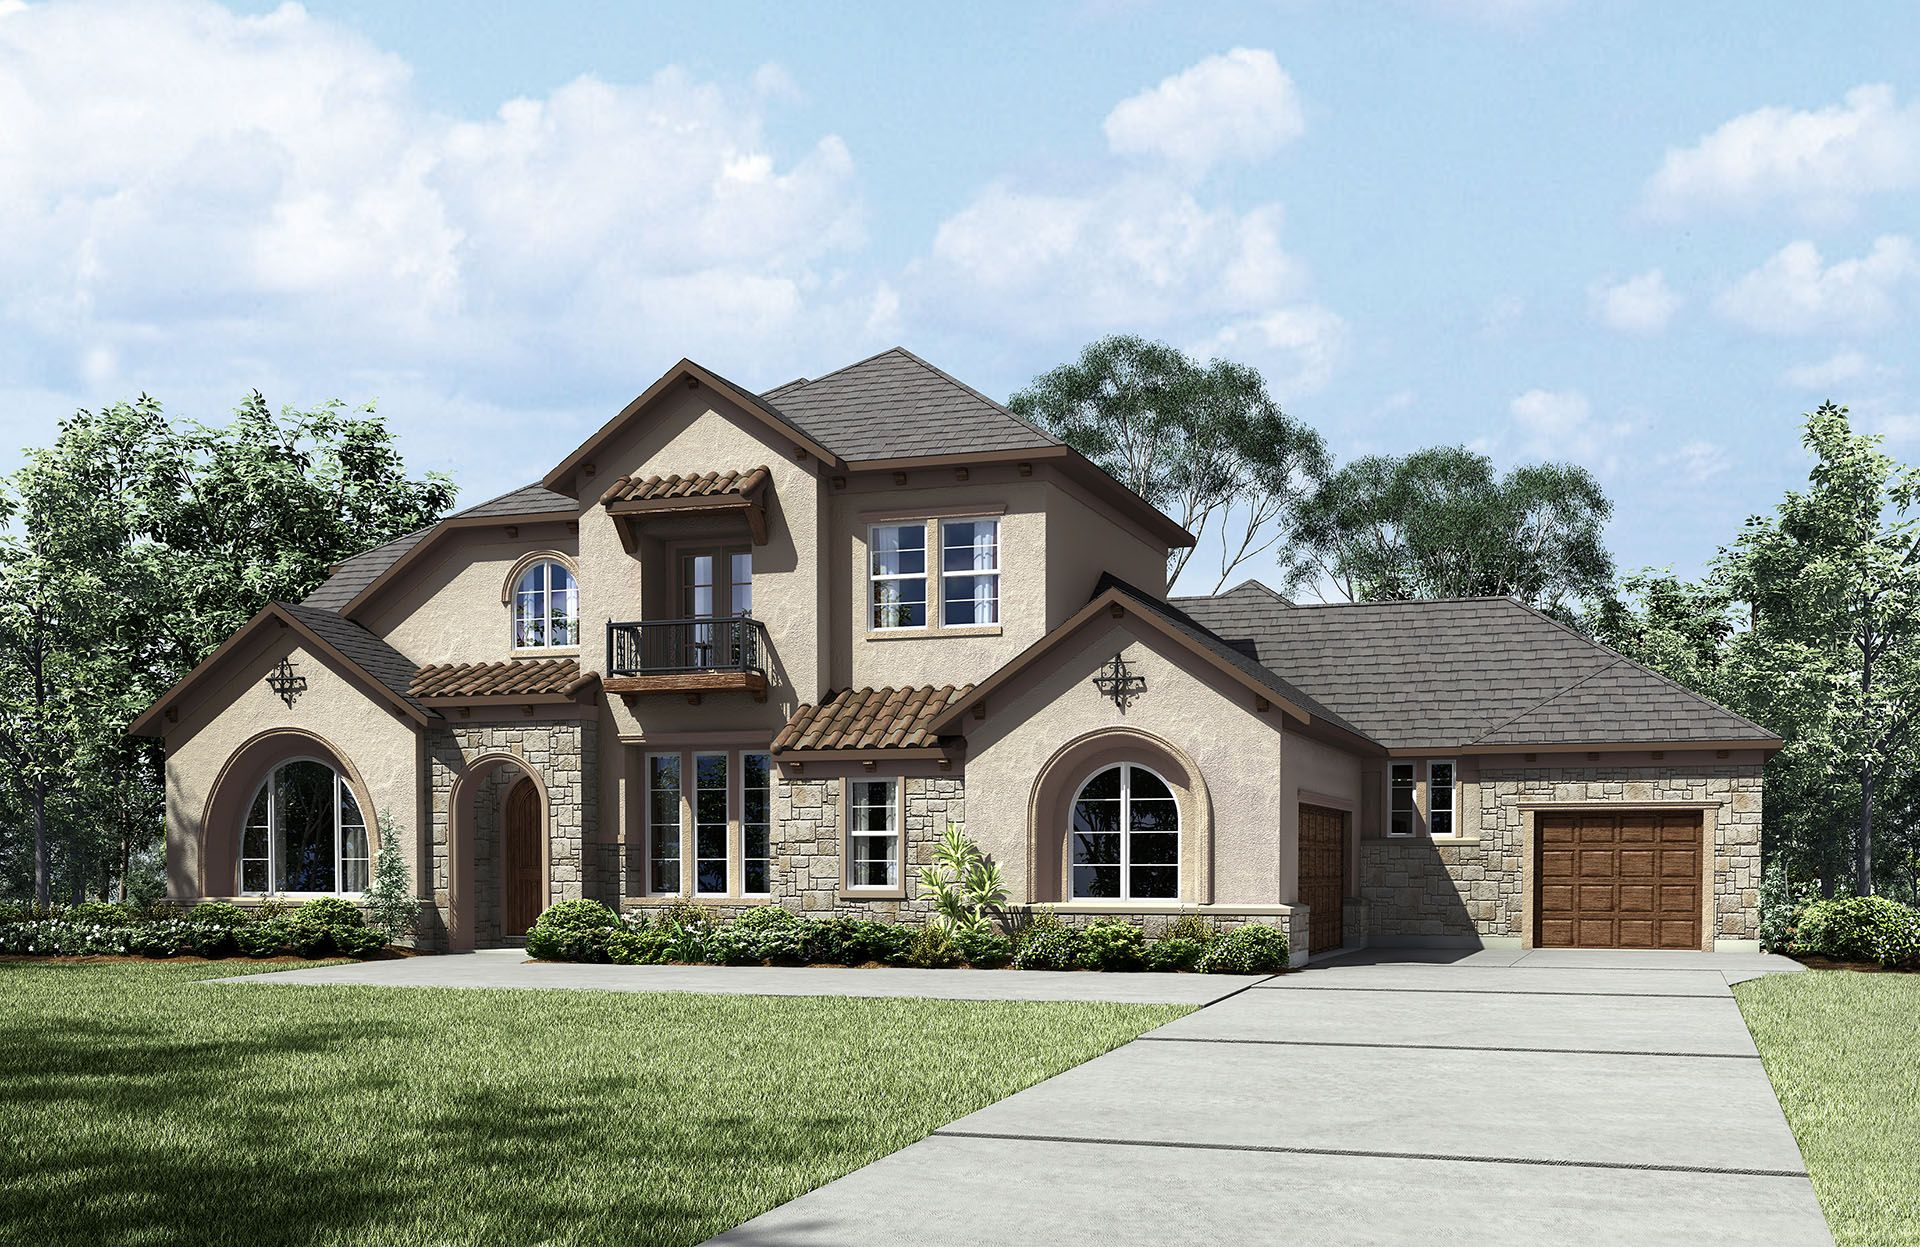 Single Family for Active at Belterra - Colinas Ii 131 Waters View Court Dripping Springs, Texas 78620 United States